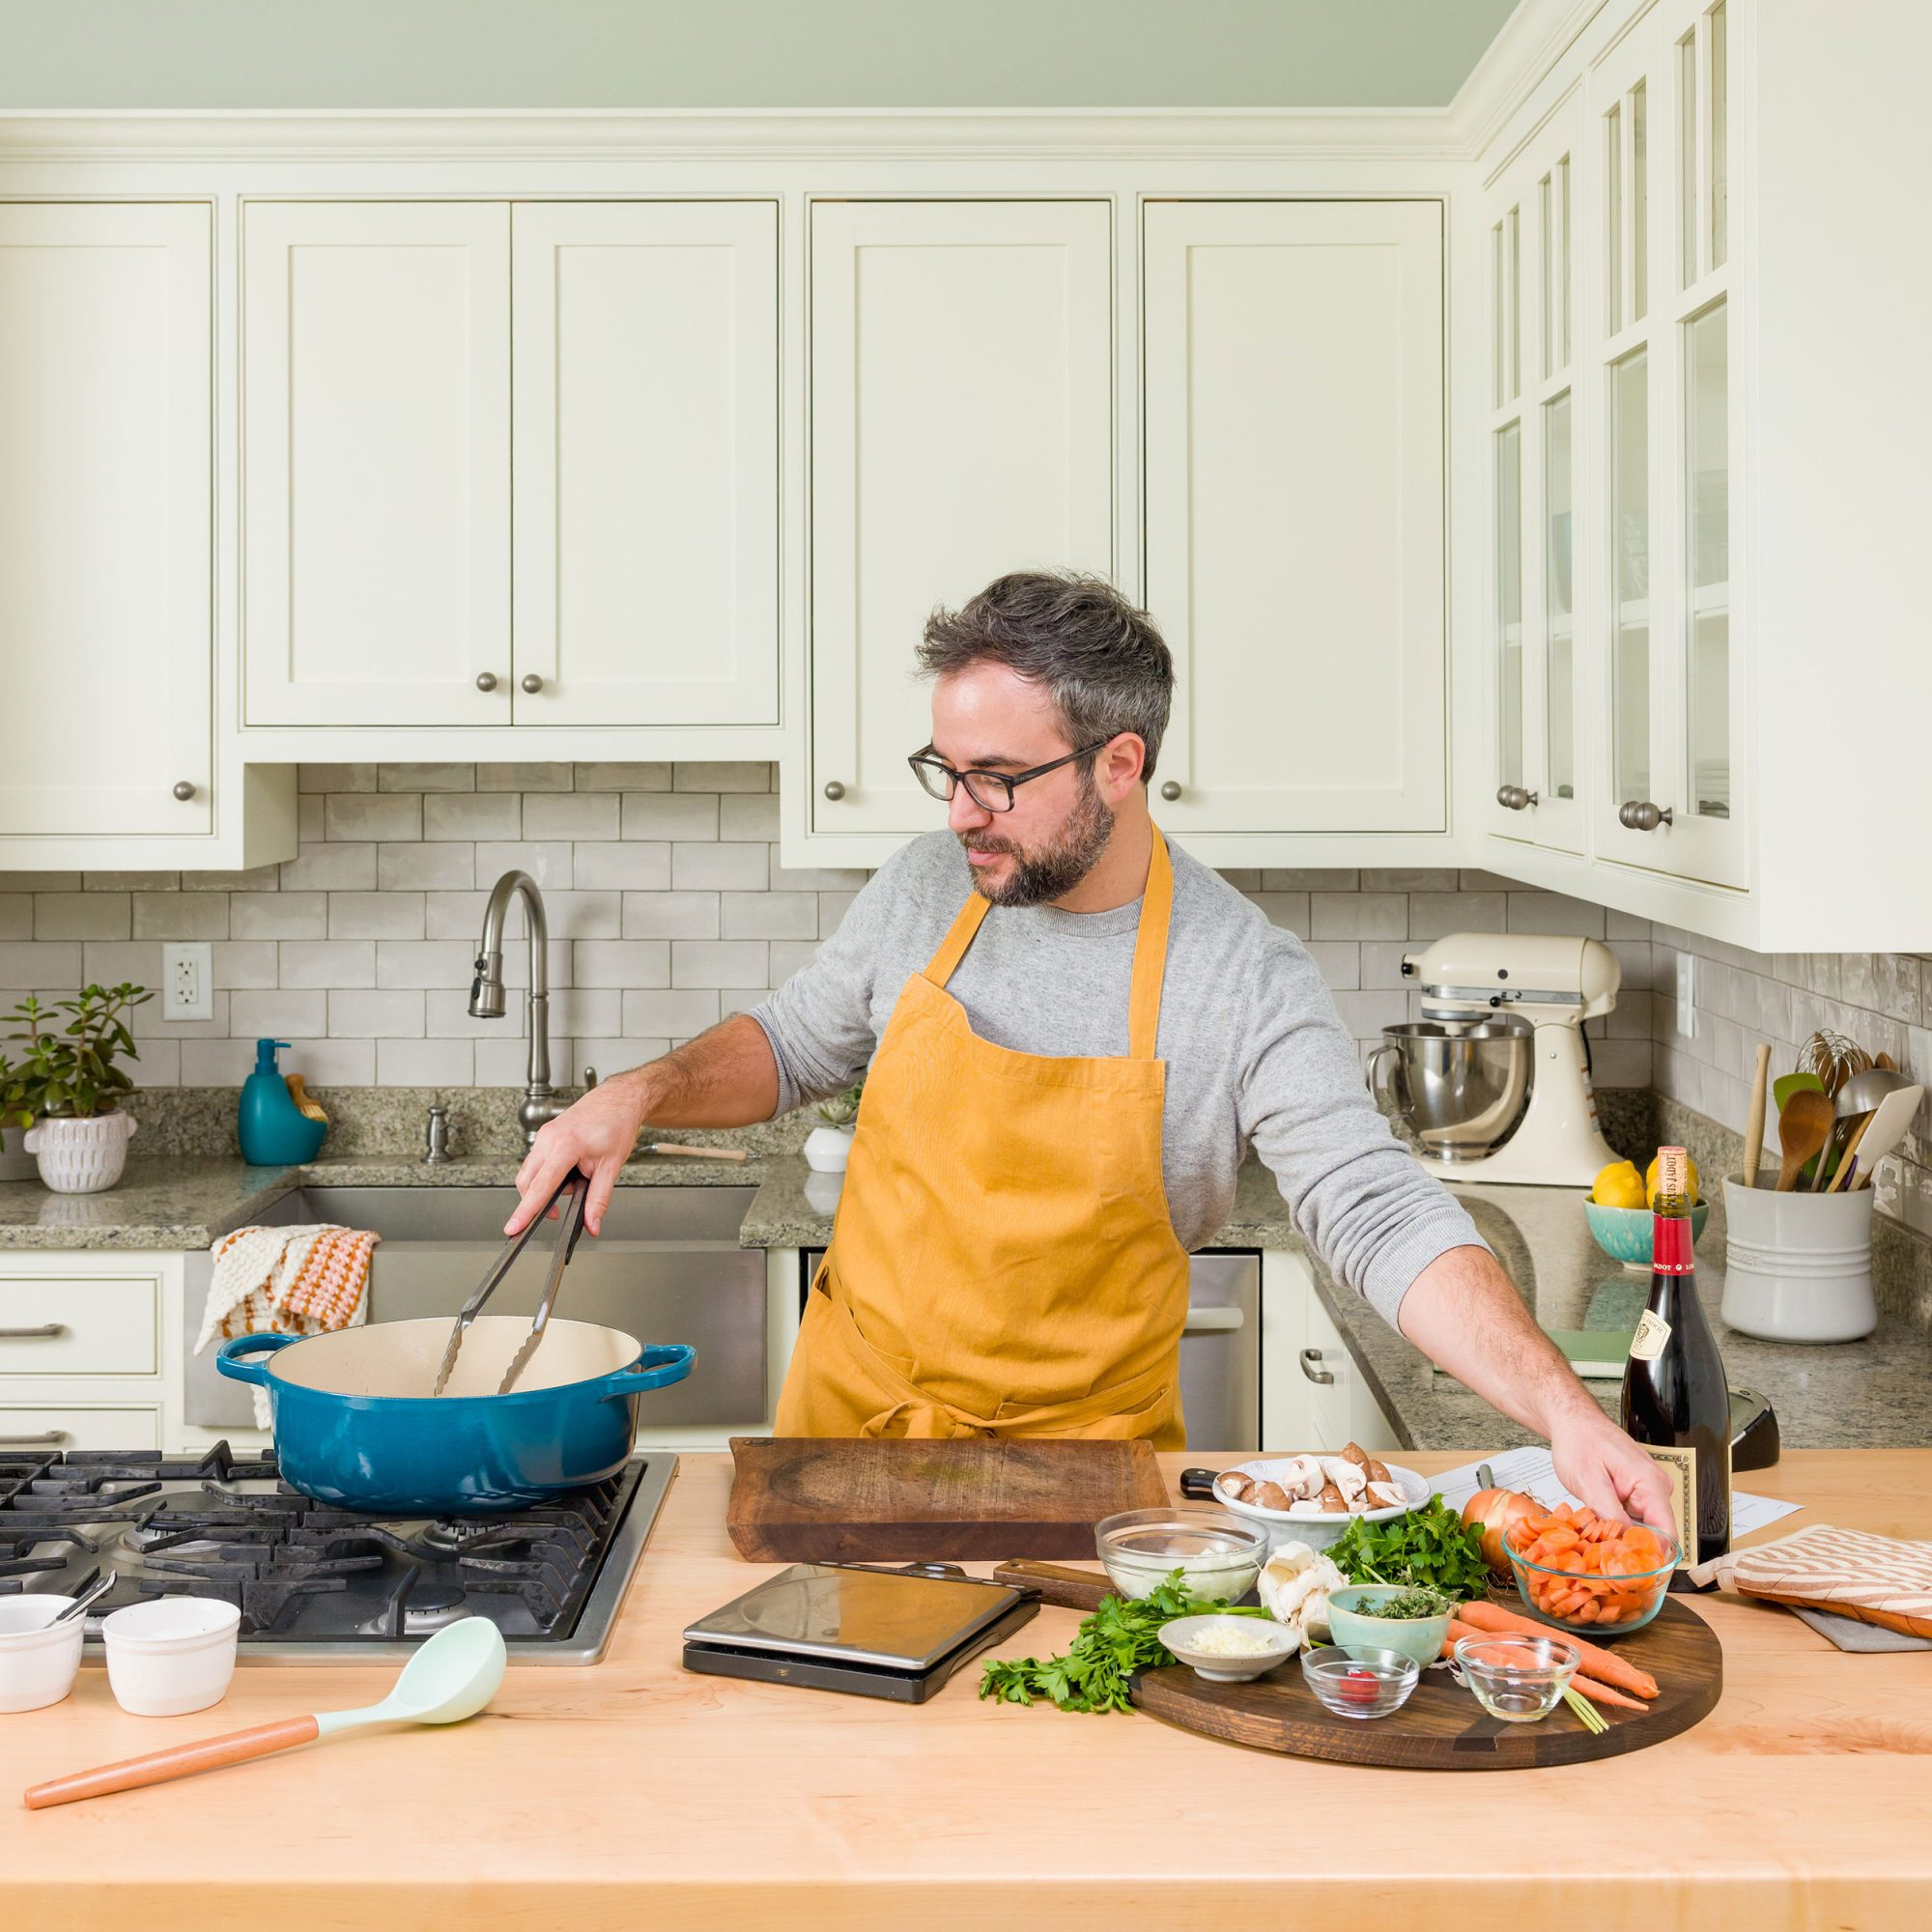 man with beard and yellow apron cooking in a bright white kitchen